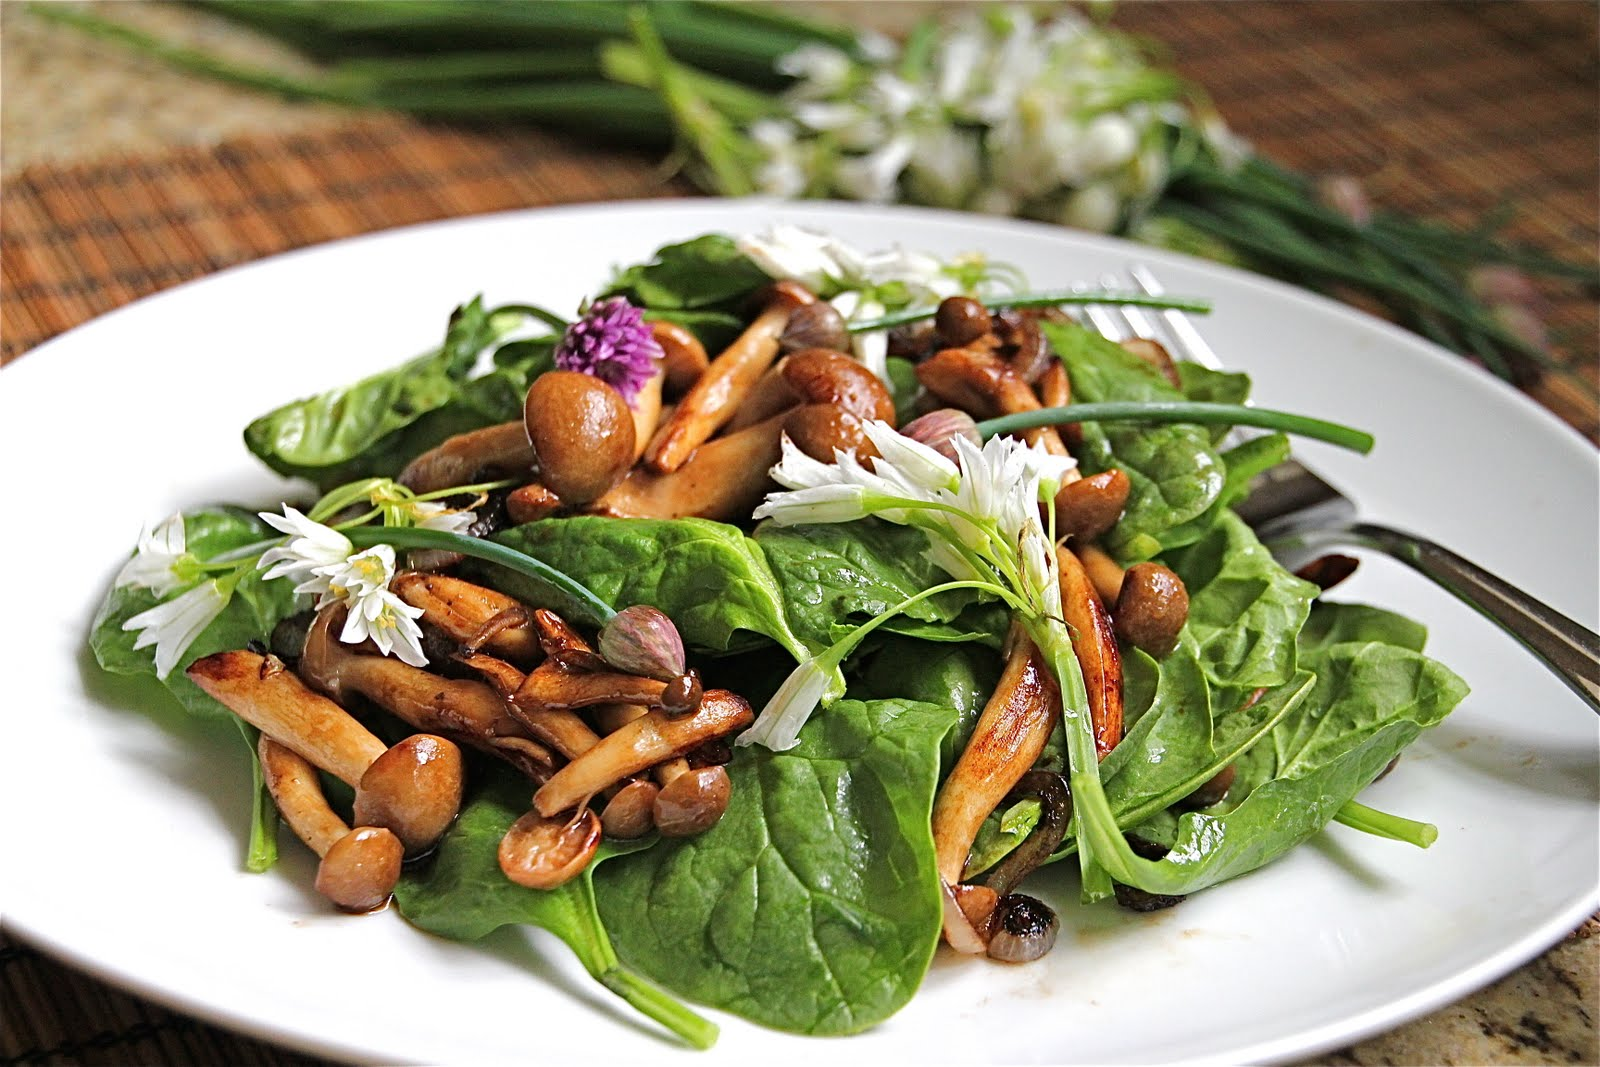 Warm Mushroom Spinach Salad made extra special with Arugula and Chive ...